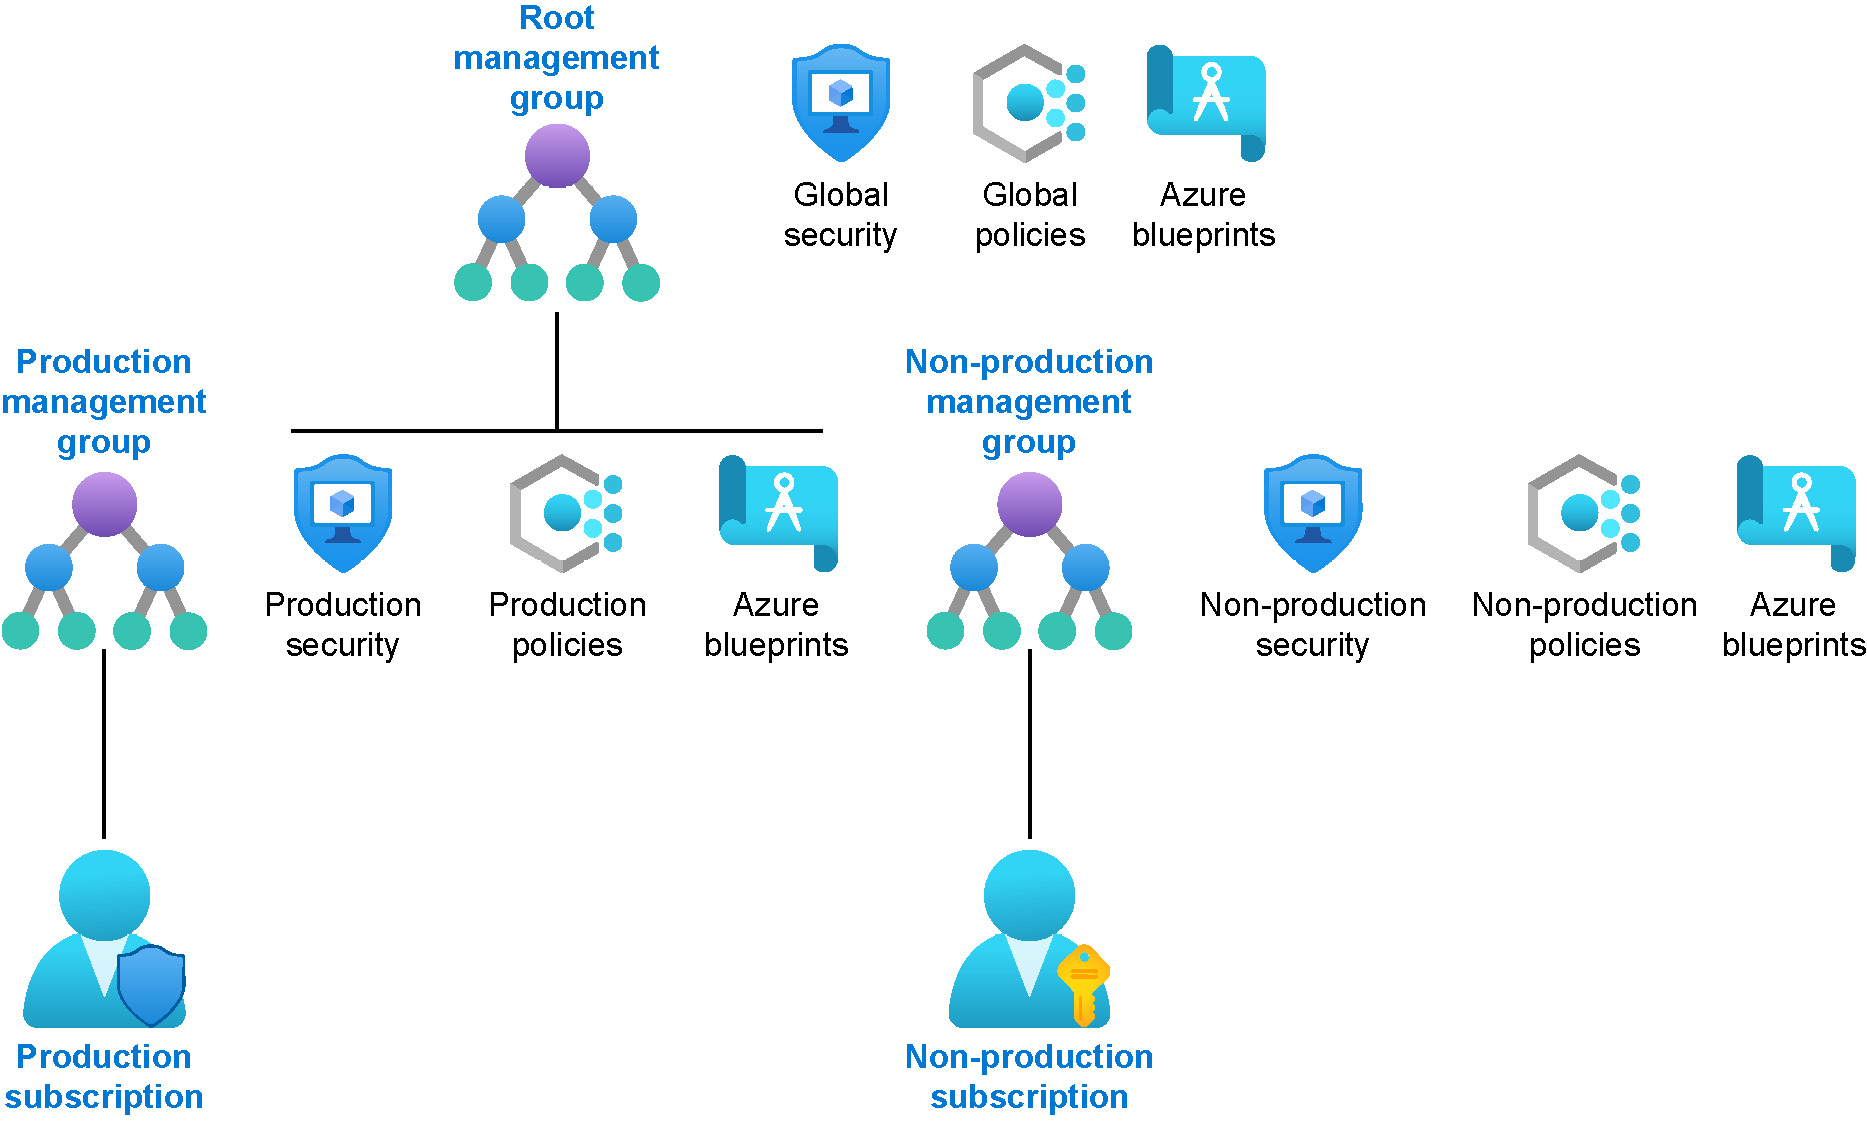 Hierarchical representation of Azure management groups